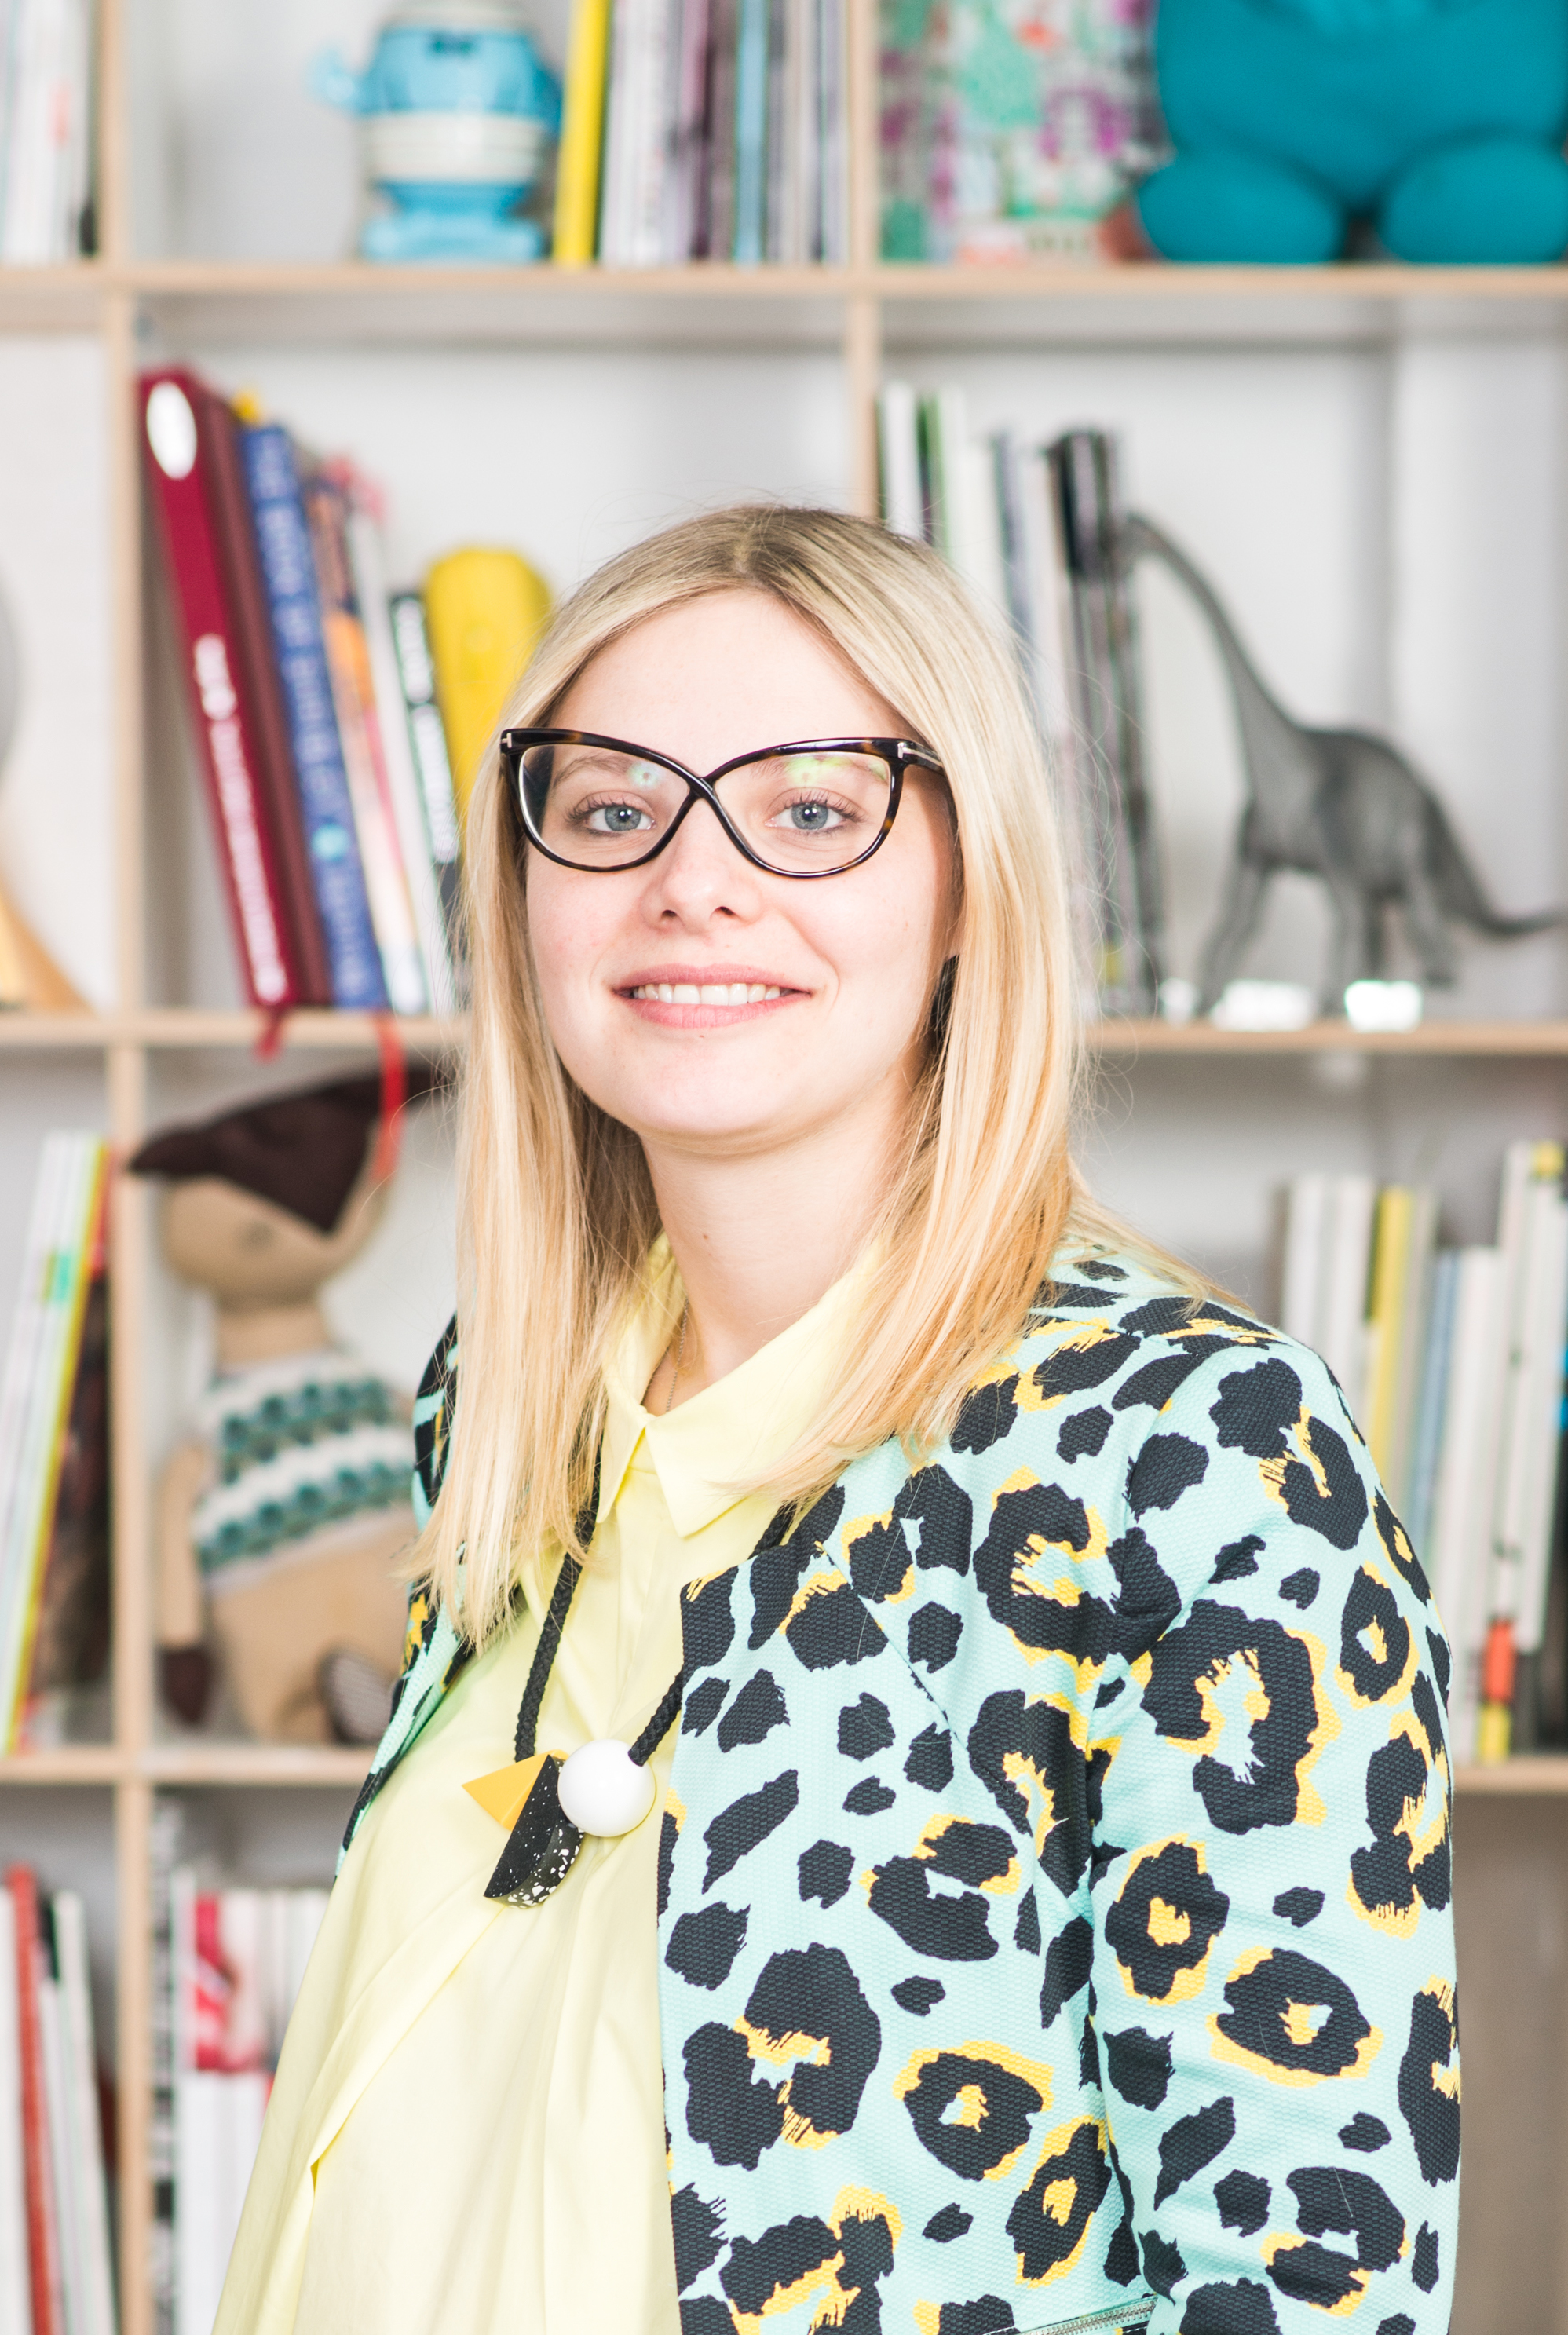 Alix Bigois-Jeambrun   Alix joined from Camberwell's MA program as a graphic design placement. Her background is illustration, a skill she uses constantly on projects from branding and packaging to textile and product development. Her recent client highlights include ranges of applied graphics for Candy Crush and leading the Wanda And The Alien style guide team for Penguin Random House.